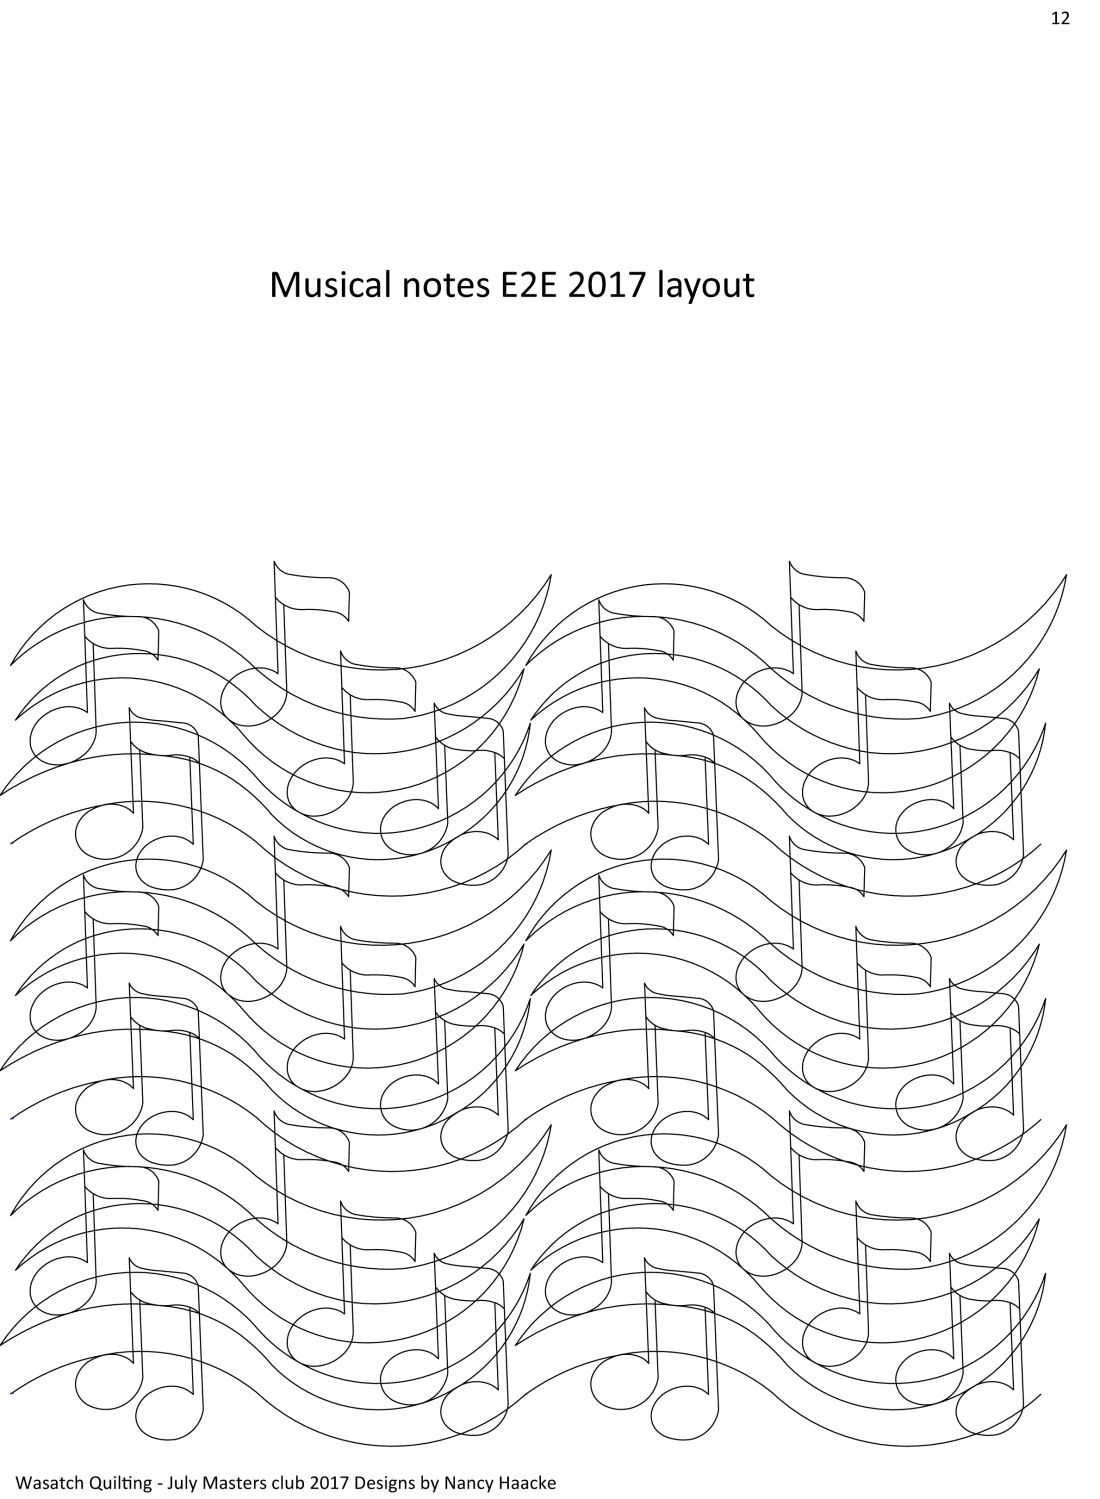 Music Notes E2E pattern. Digitized quilting patterns by Wasatch Quilting